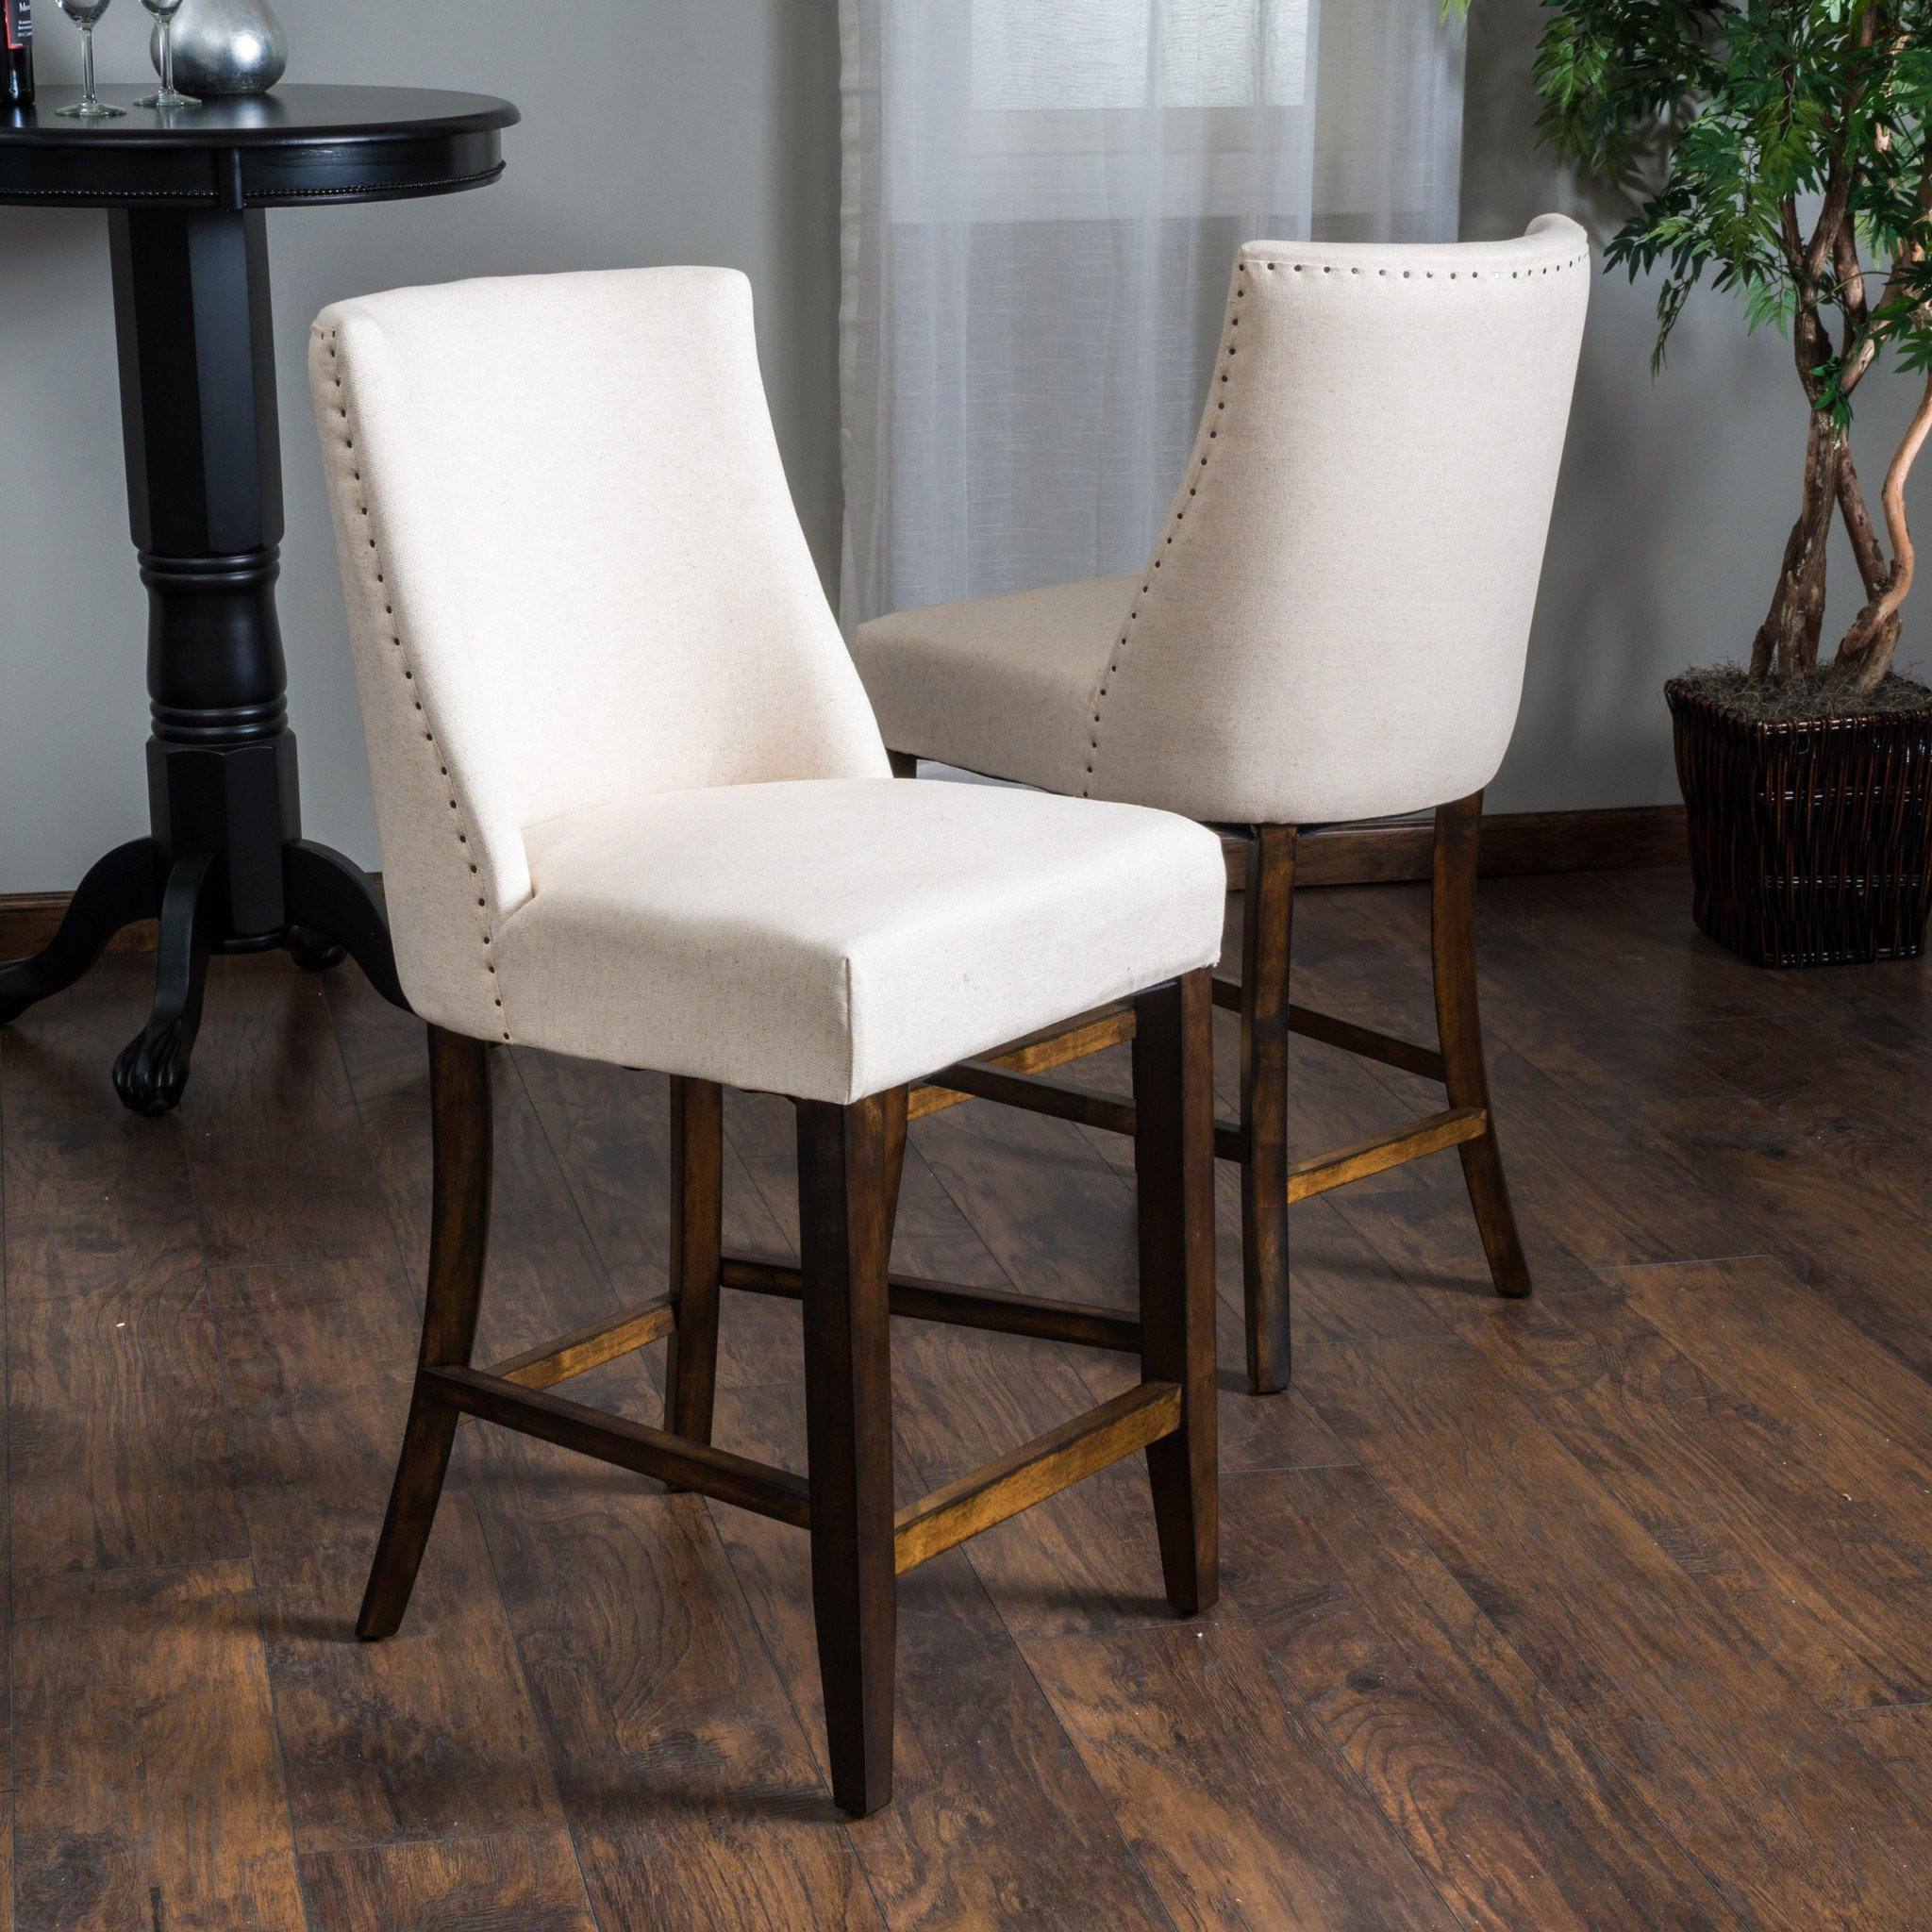 Rydel Beige Linen Fabric Counter Stools (Set of 2)